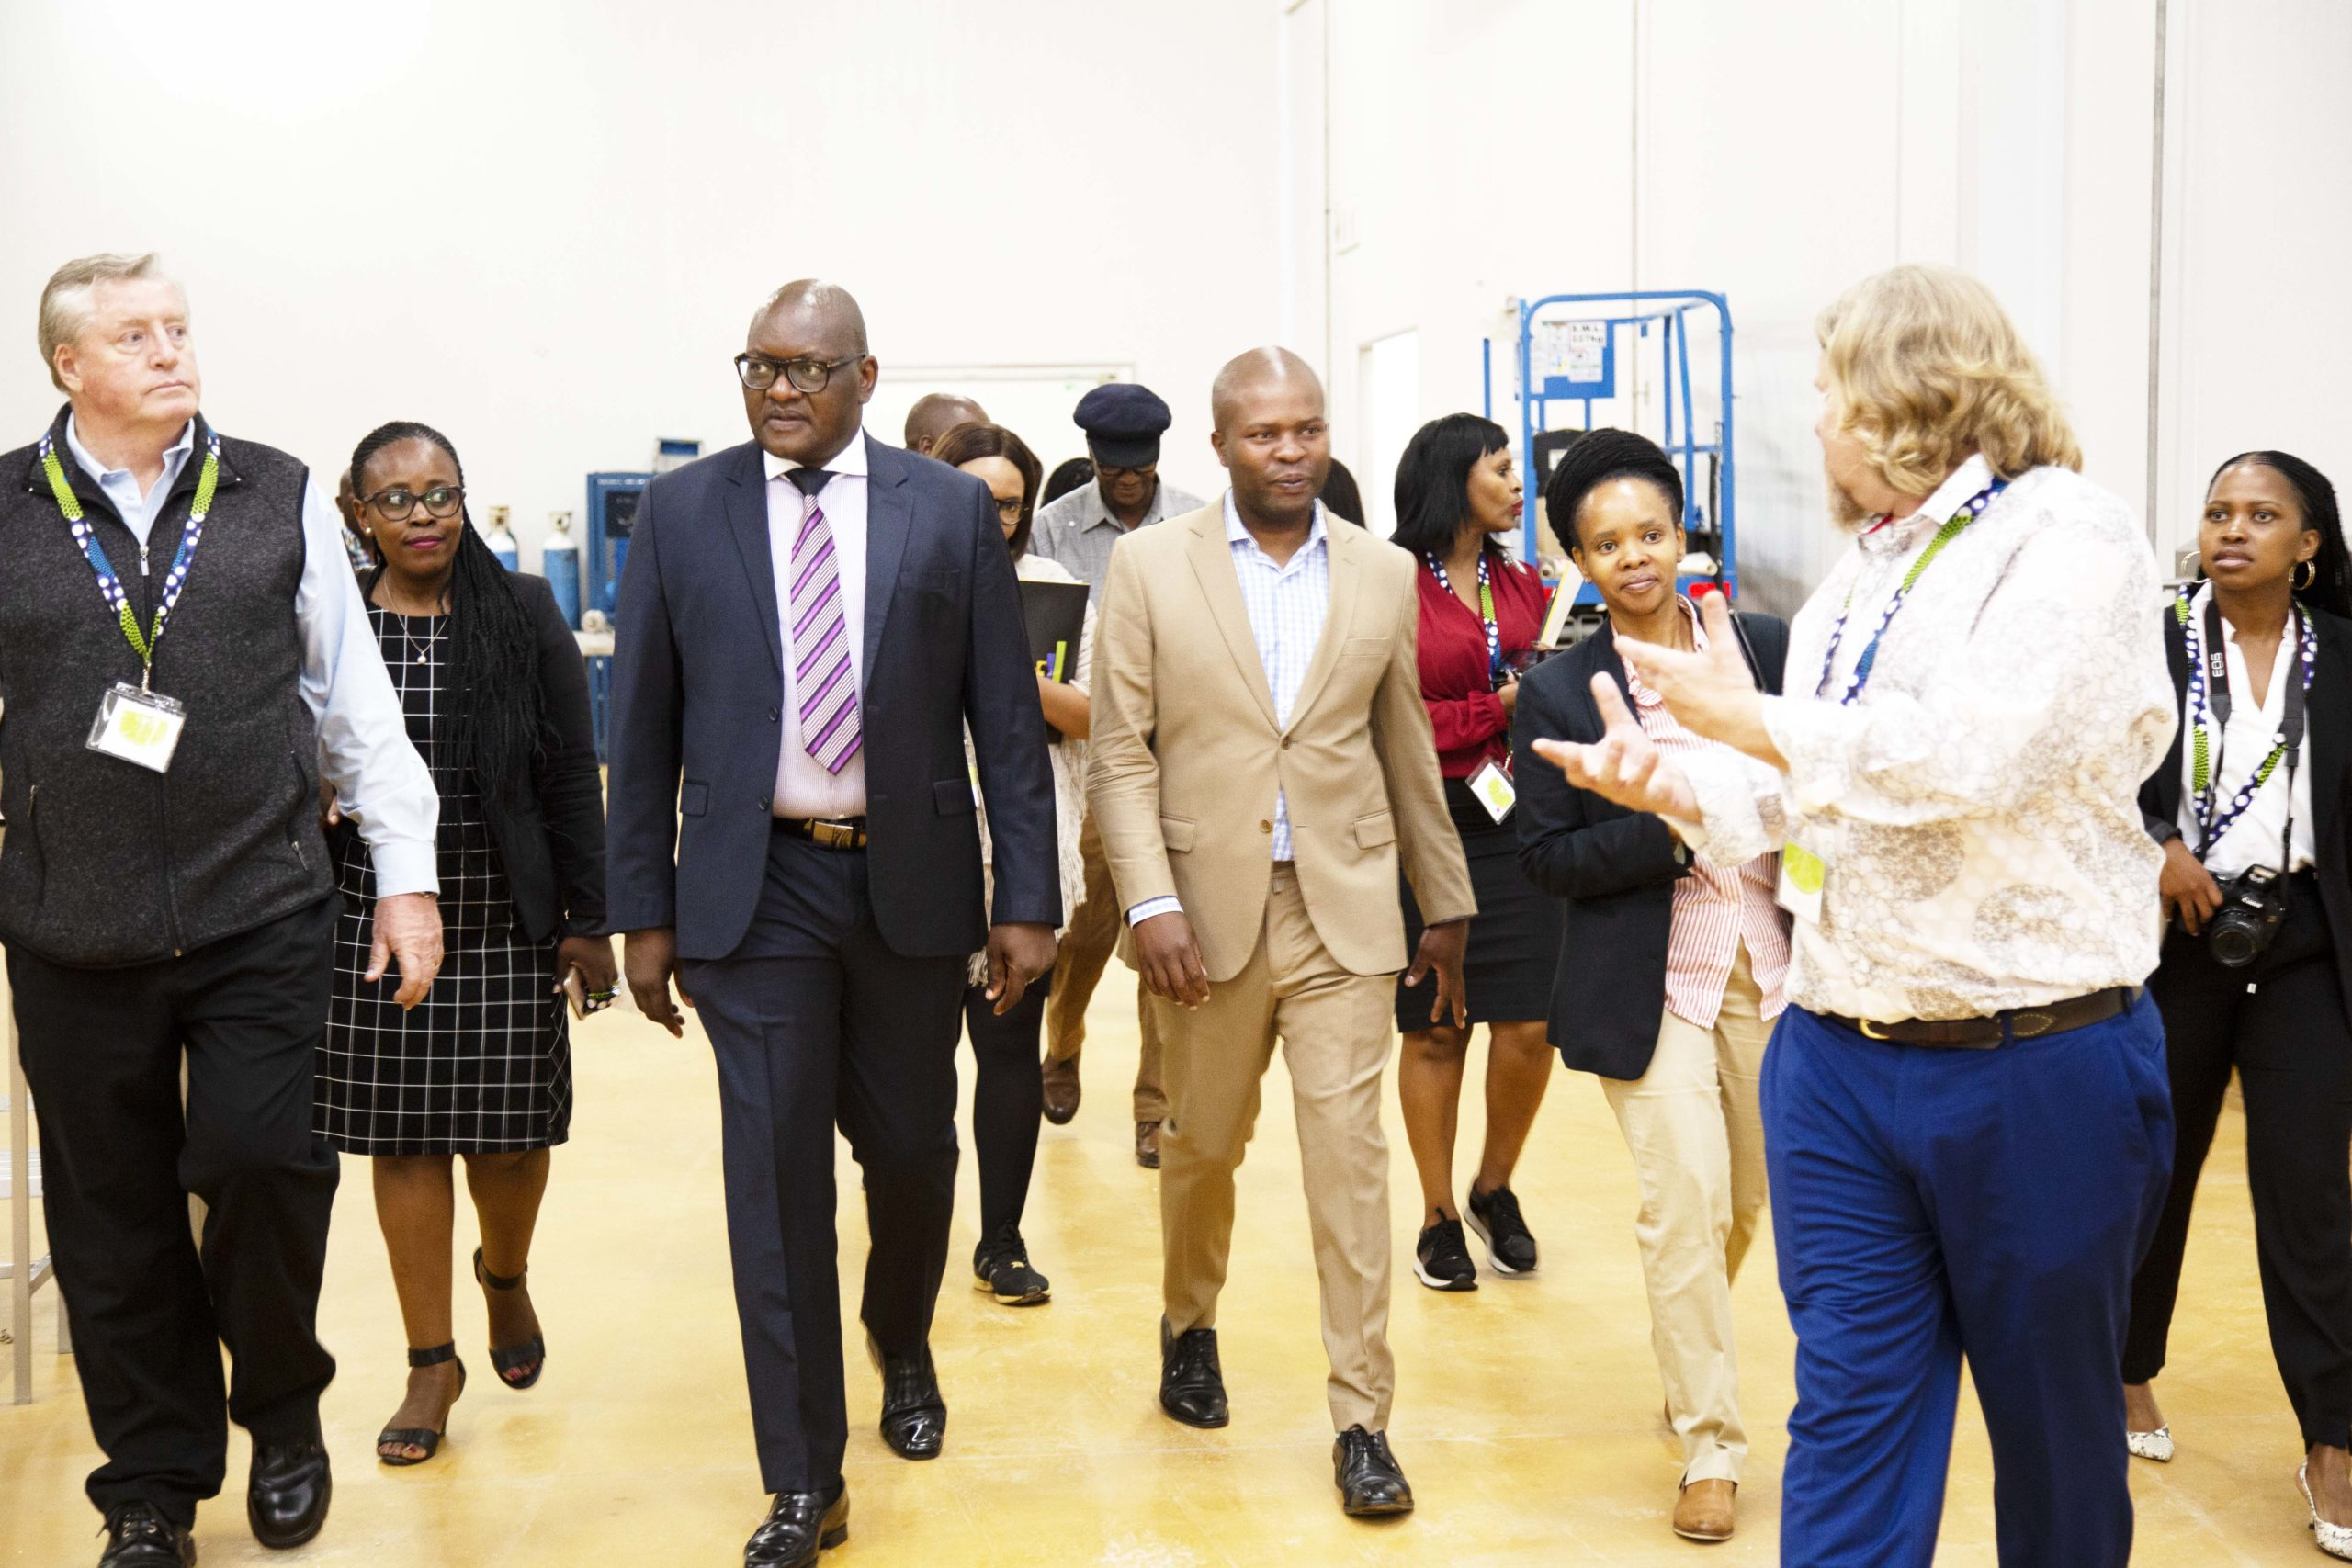 In2food Officially Opens Its World Class Production Facility in Banaero Park